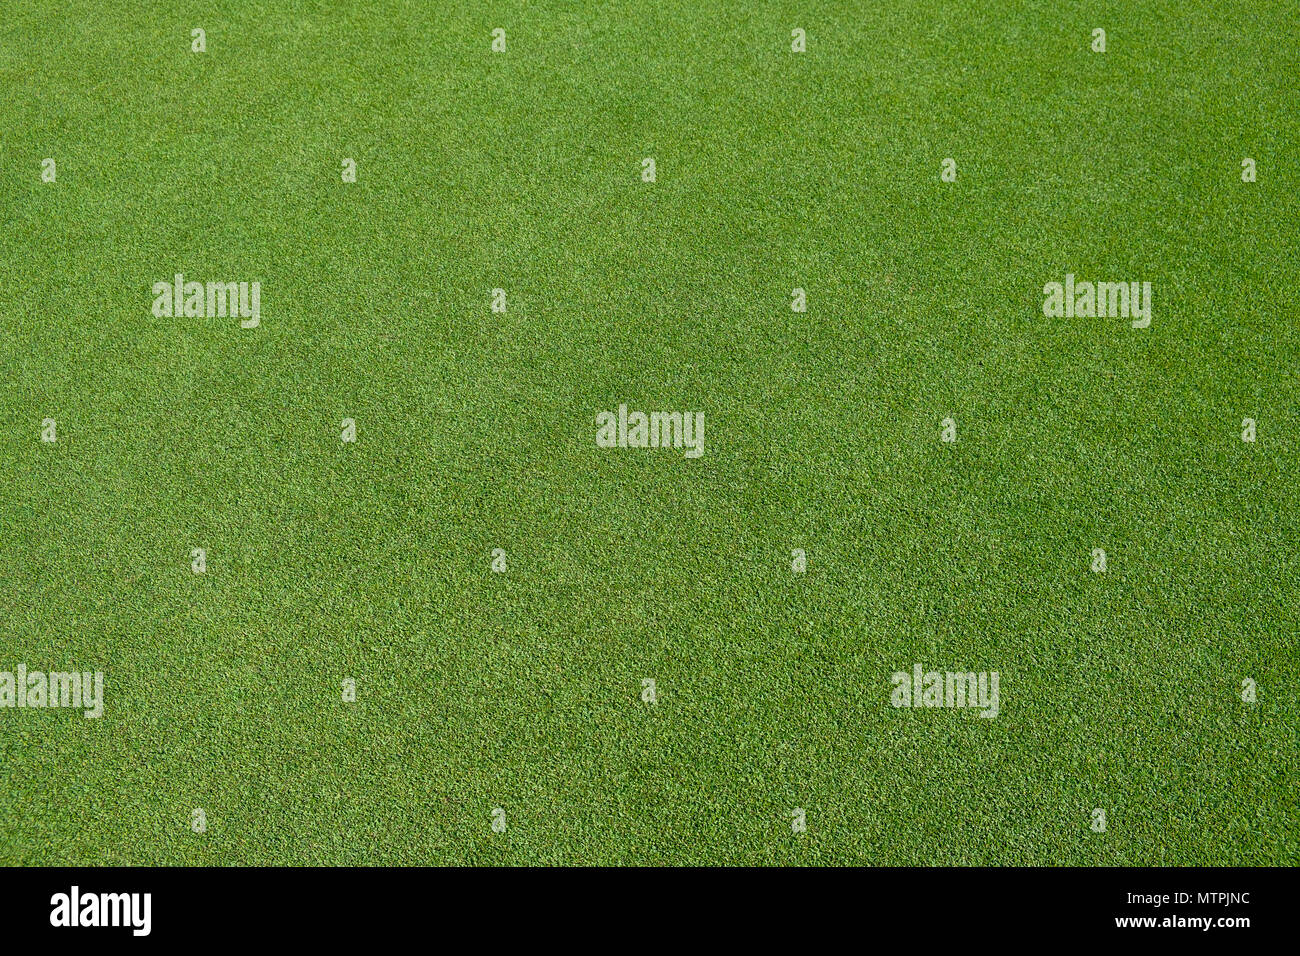 Golf green field - Stock Image